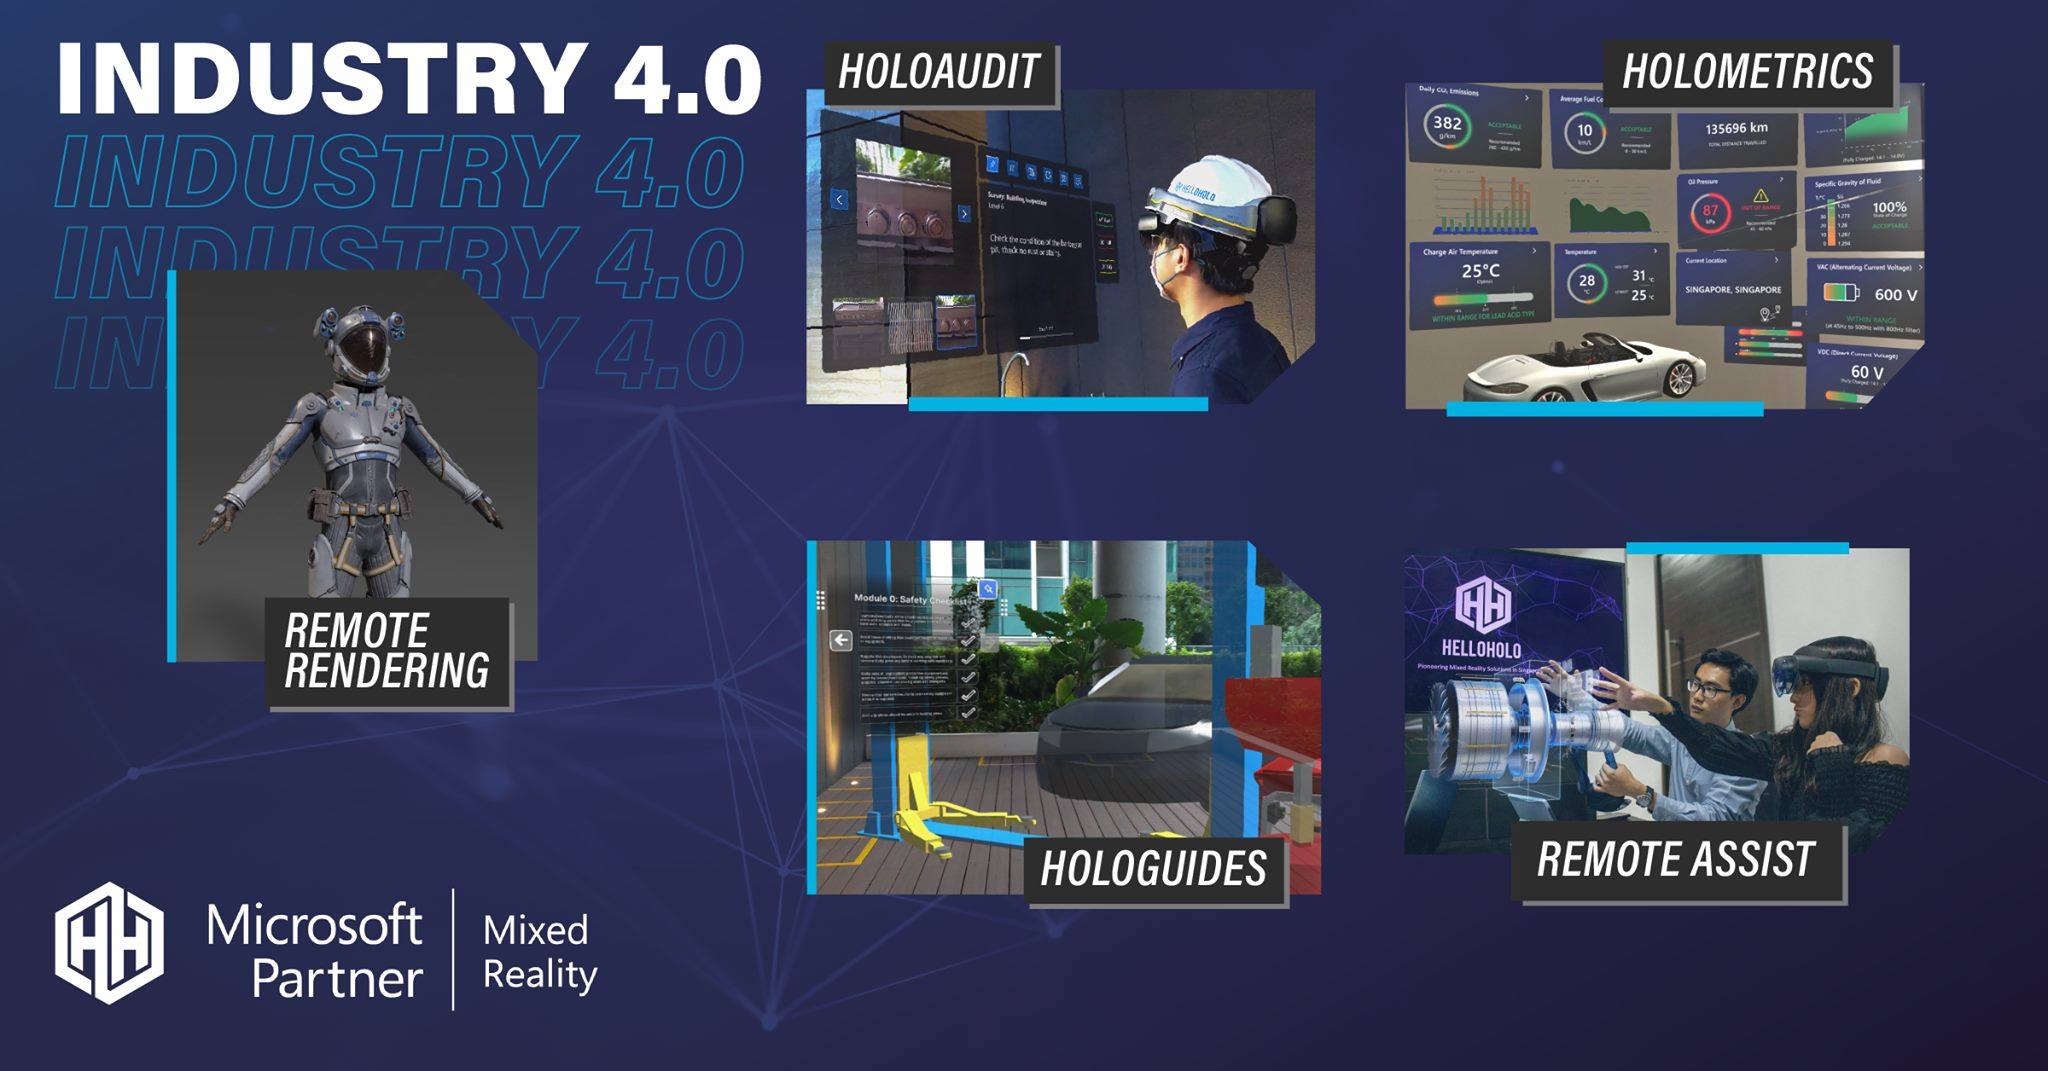 Article Thumbnail - Mixed Reality In Support Of Industry 4.0